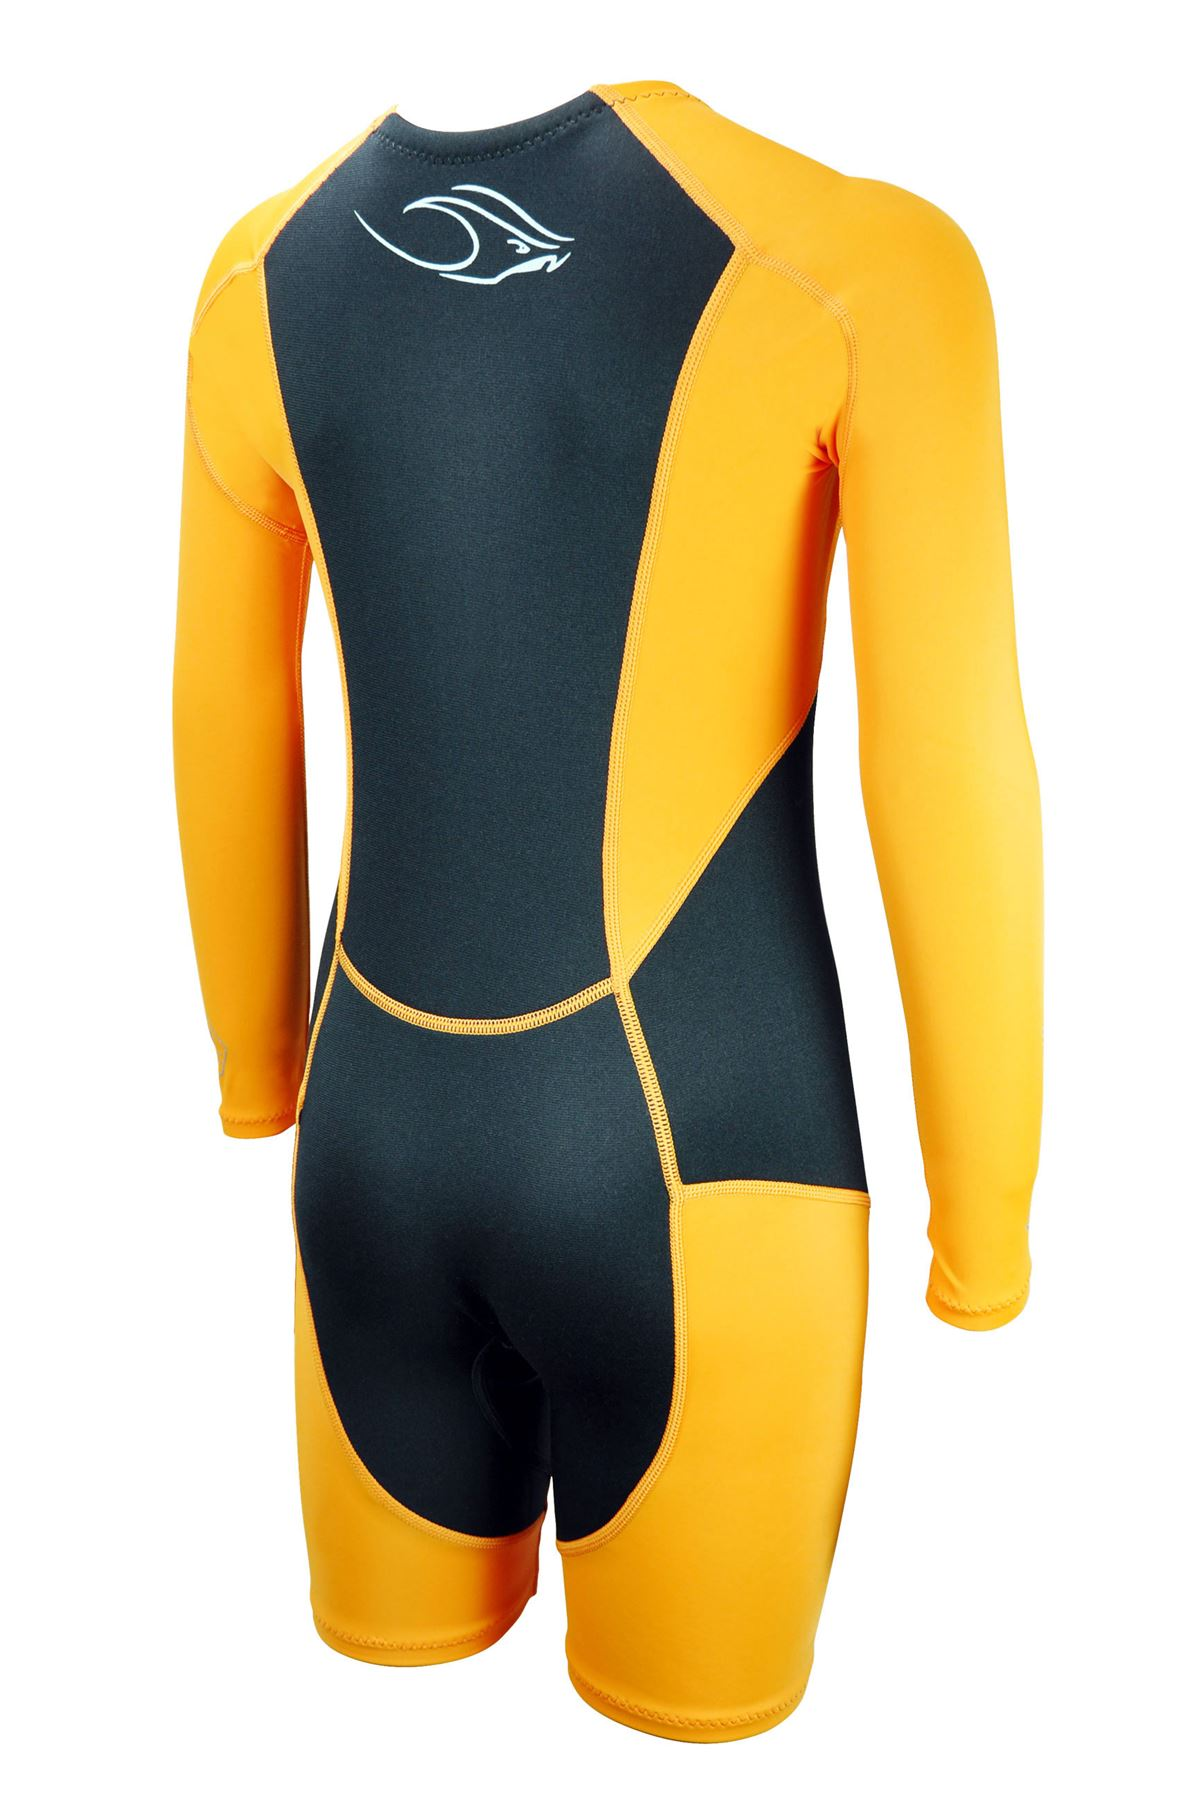 how to buy a wetsuit for swimming